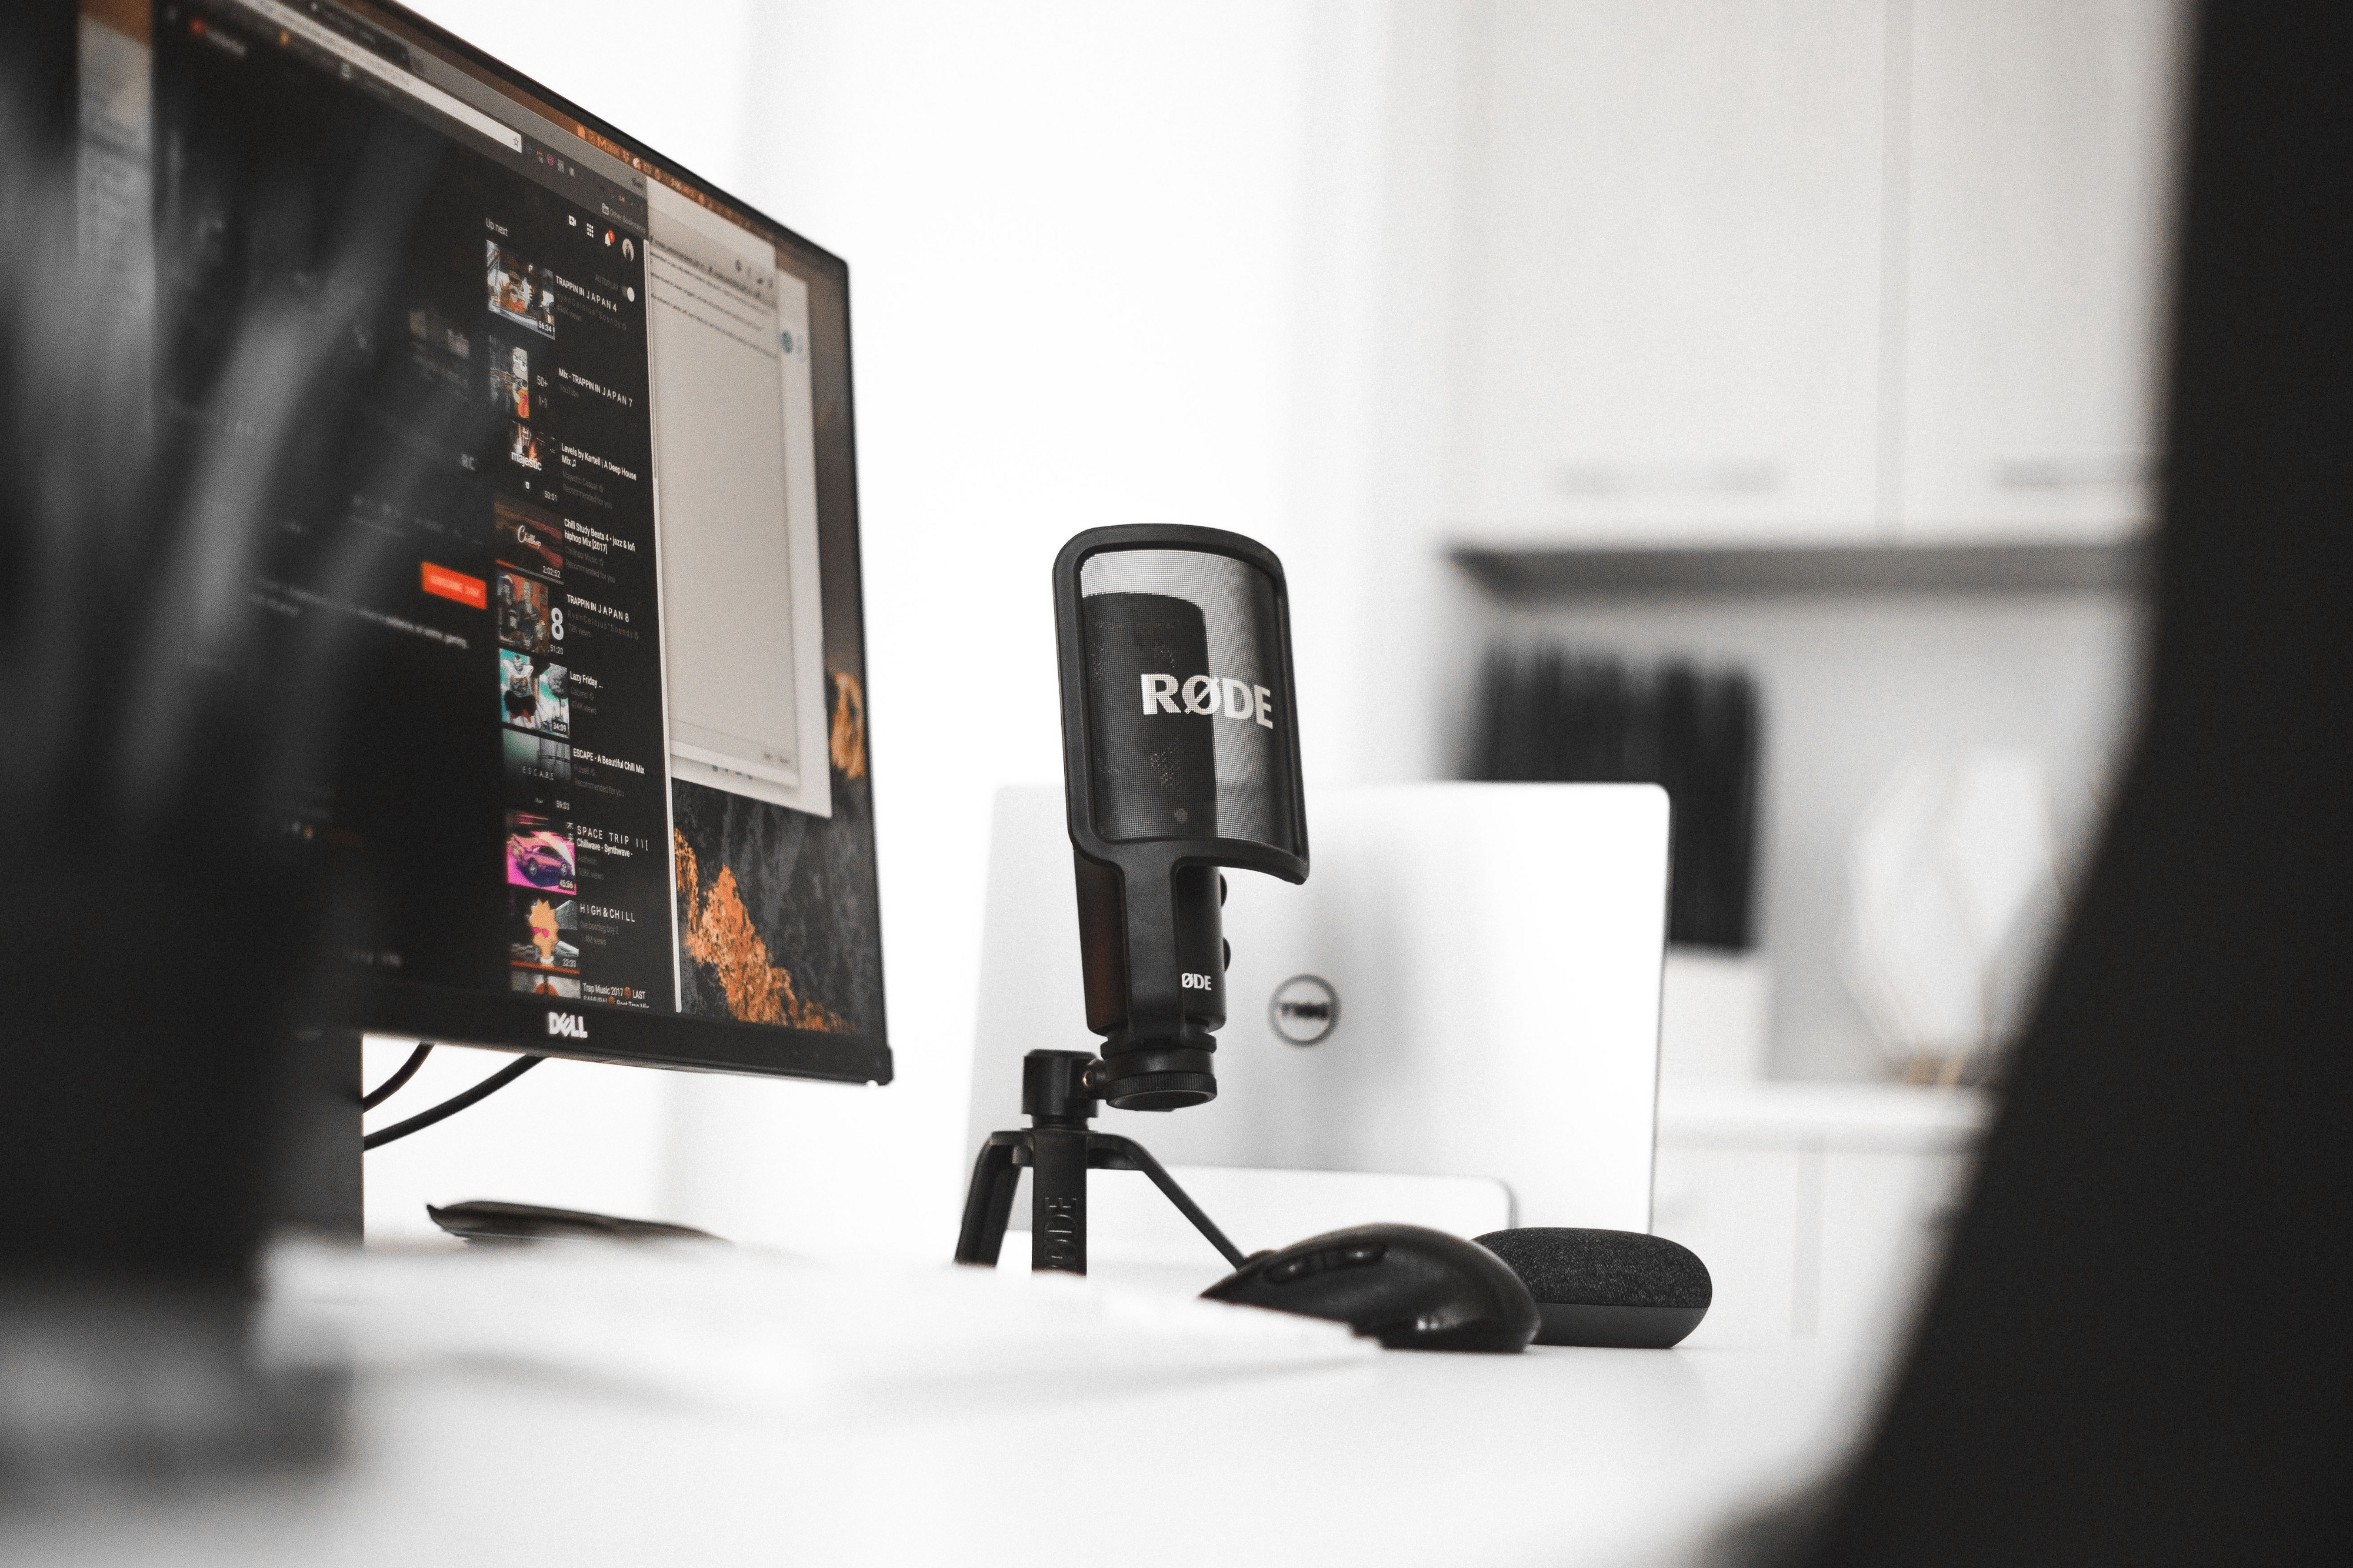 Podcast equipment setup in a recording studio office.